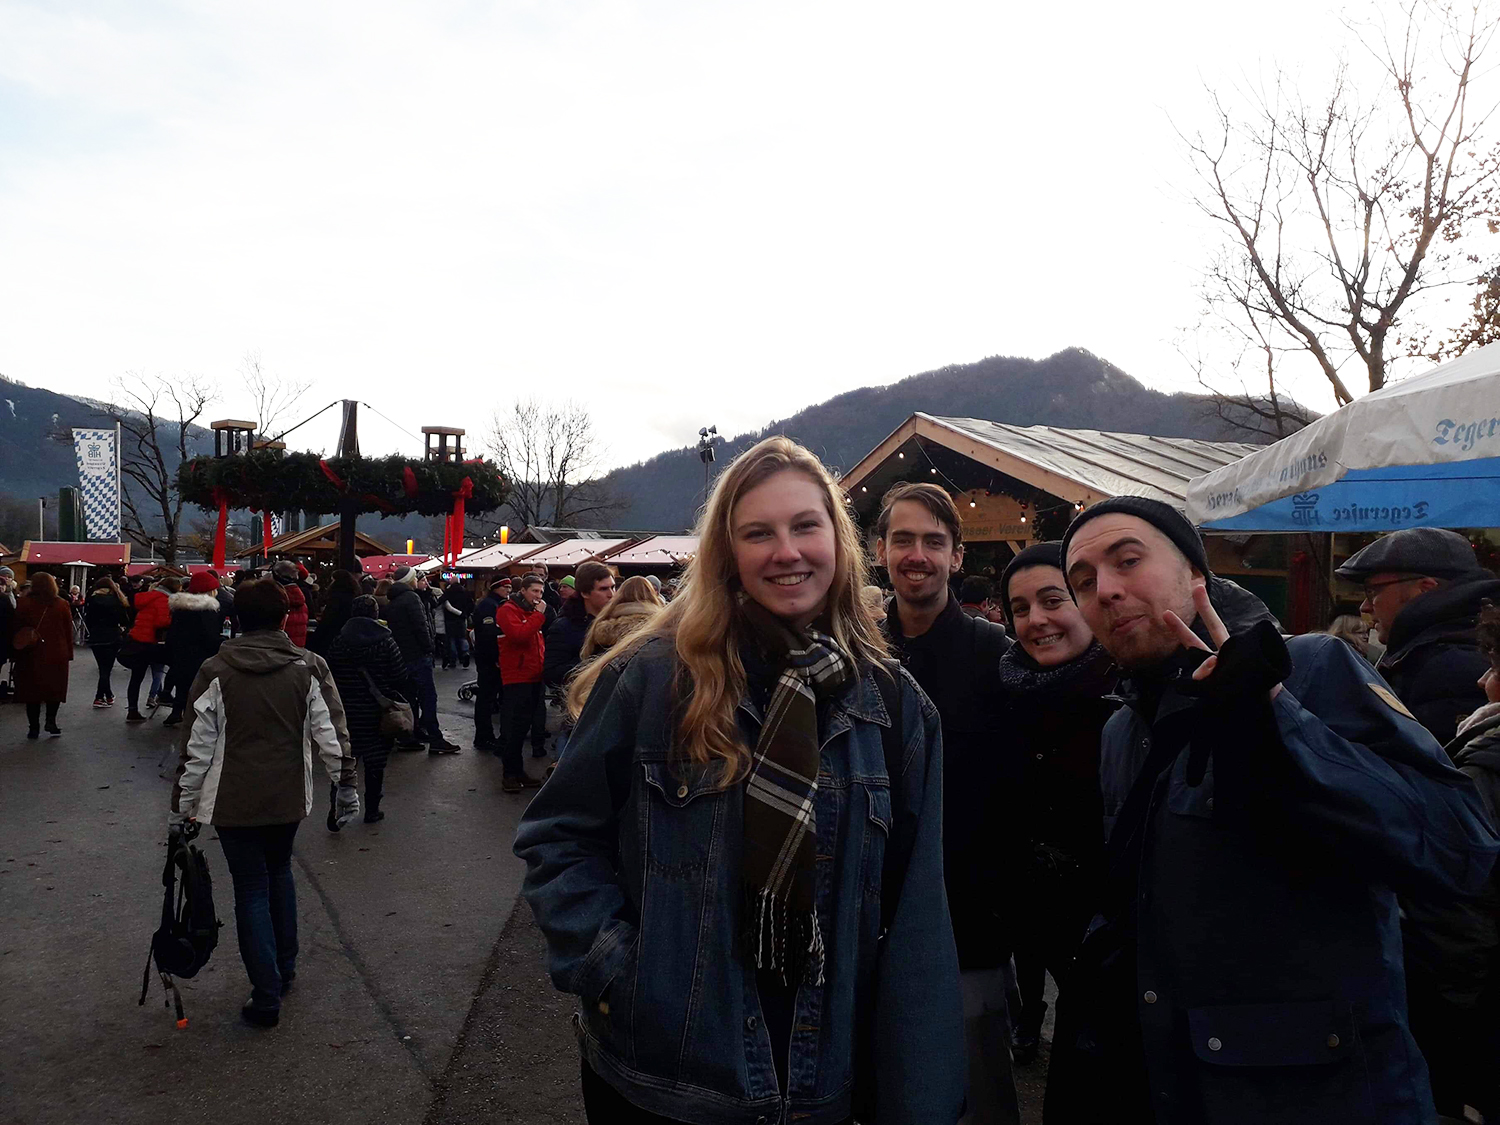 Jasmine and some friends smiling for the camera at Tegernsee Christmas market.